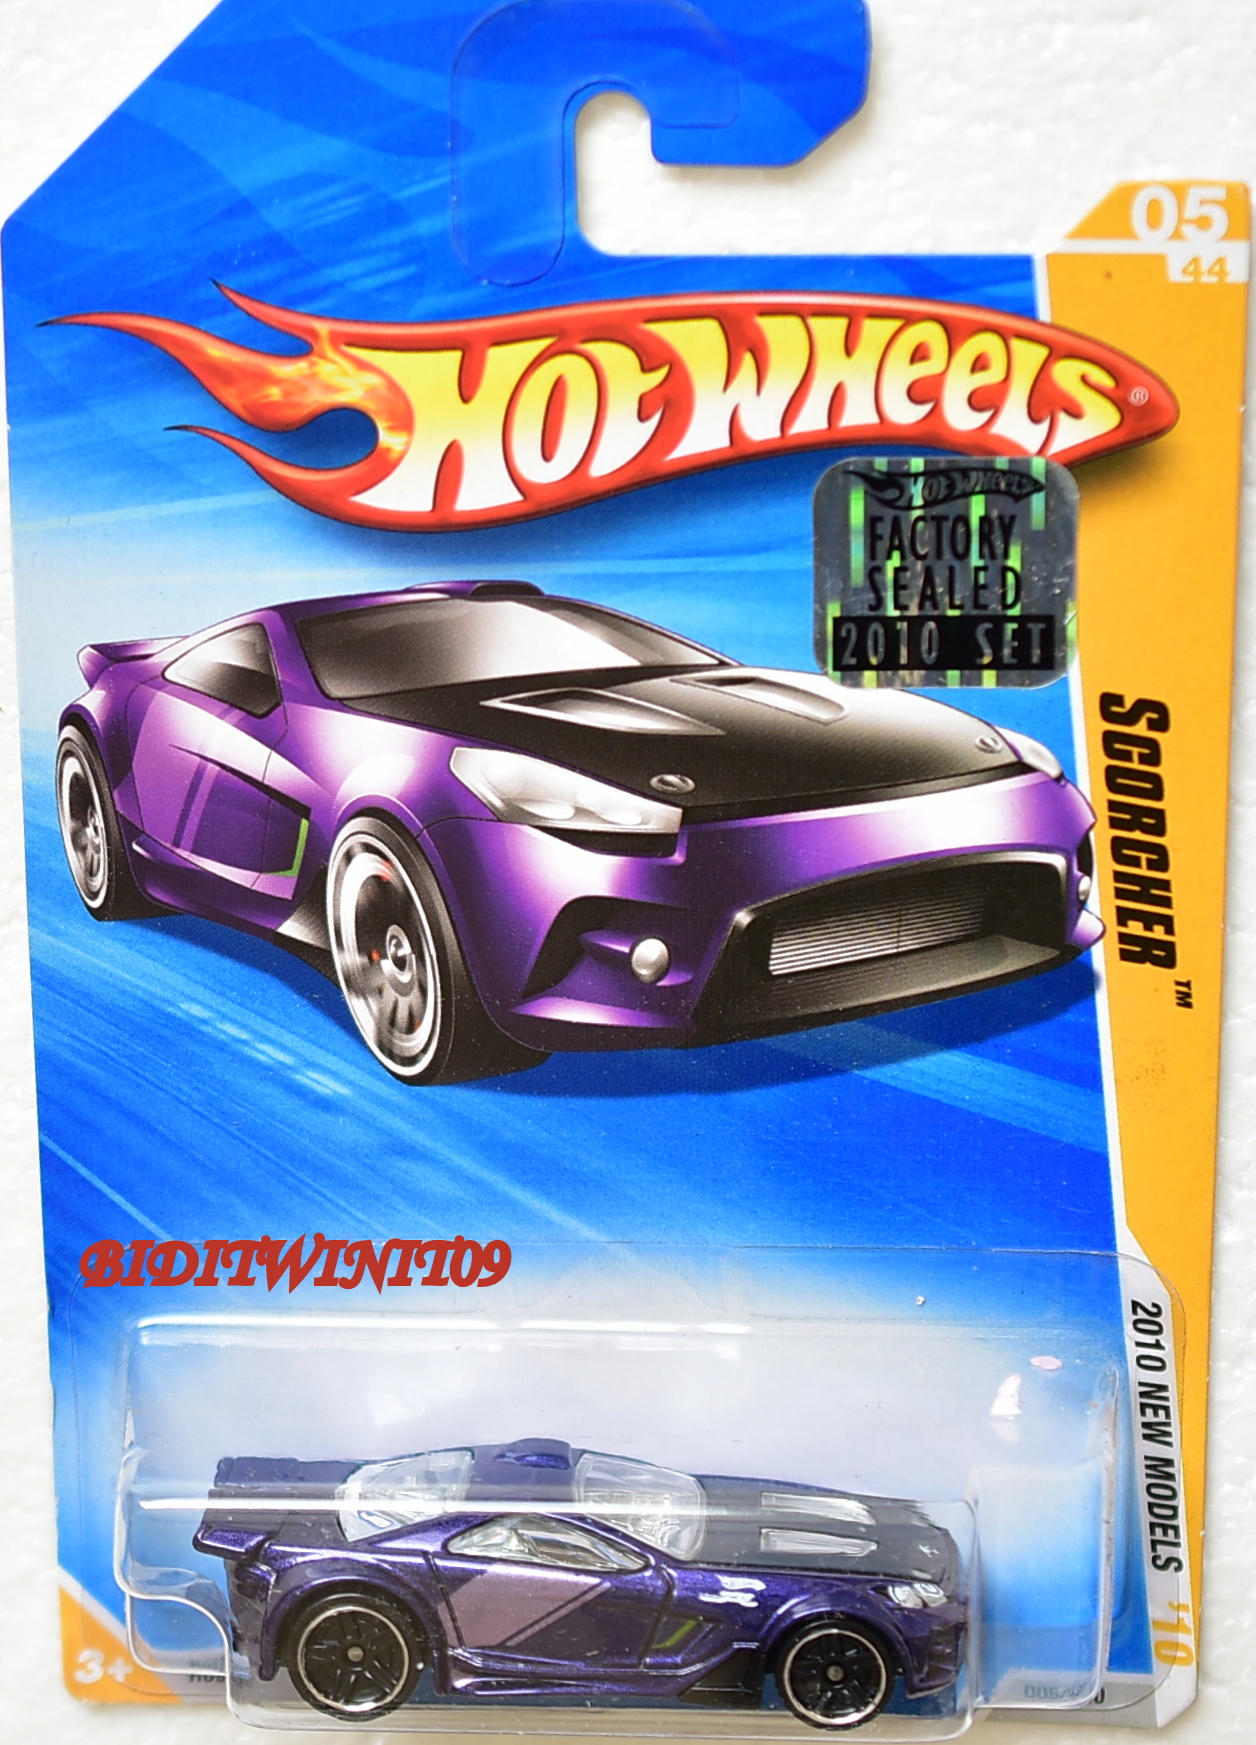 HOT WHEELS 2010 NEW MODELS SCORCHER #05/44 PURPLE FACTORY SEALED